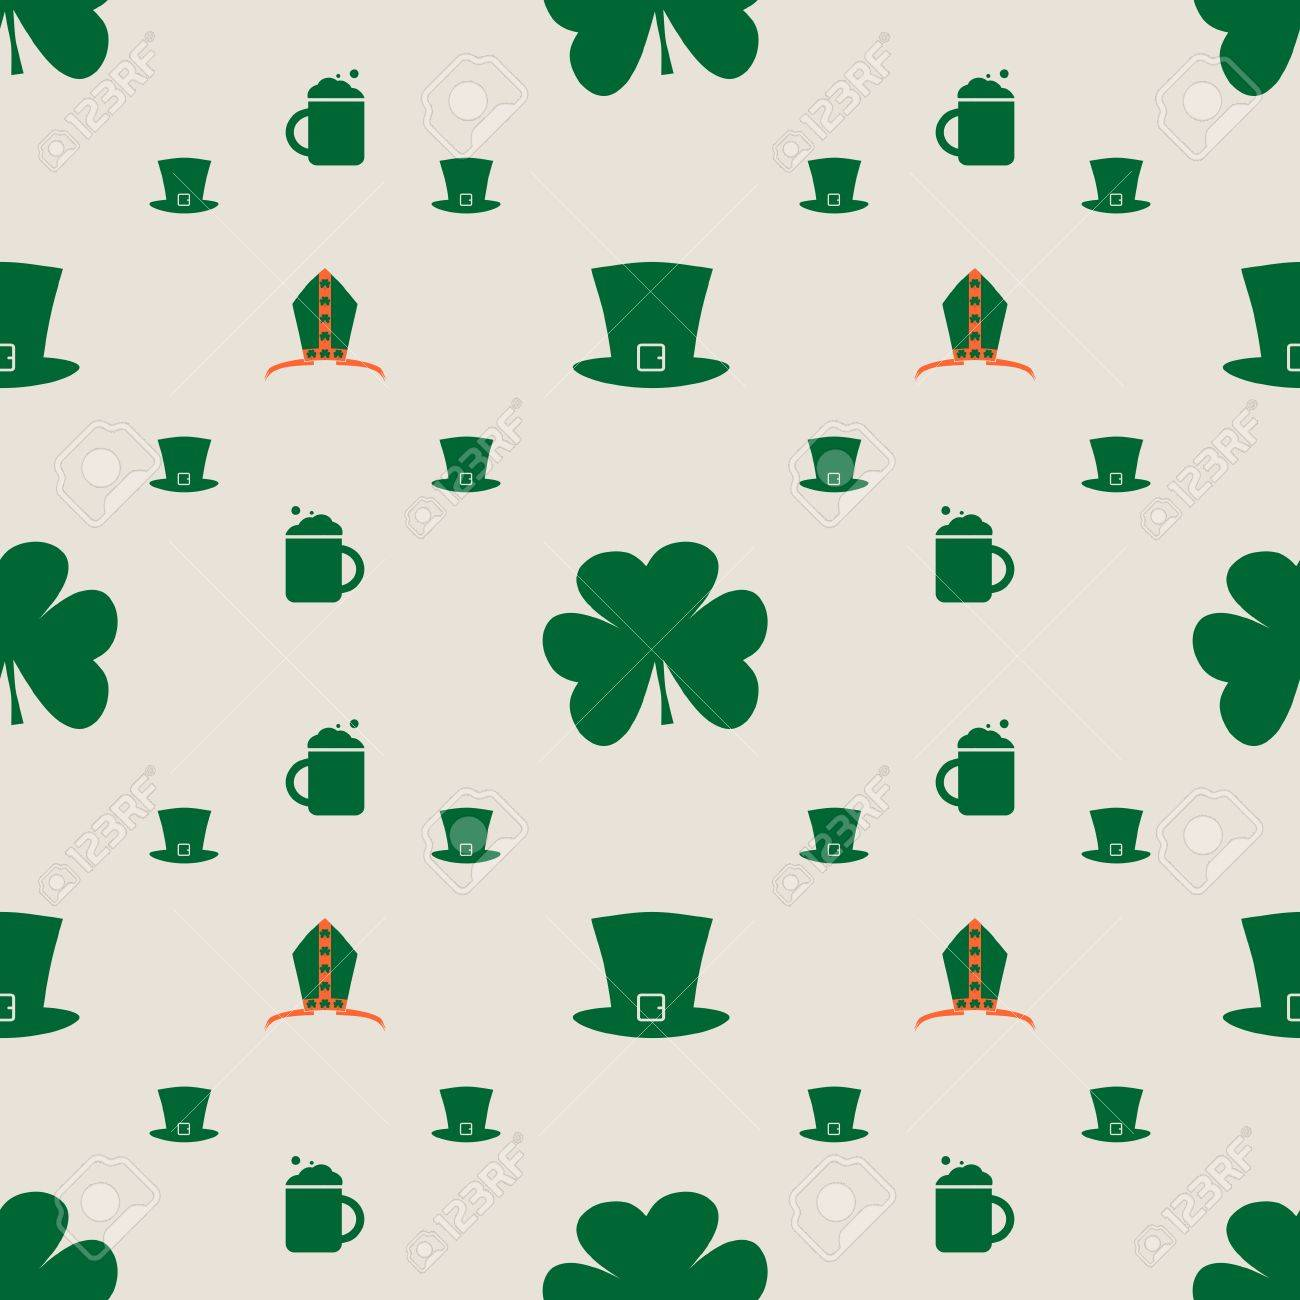 st patrick s day greeting card template bishop mitre with shamrock